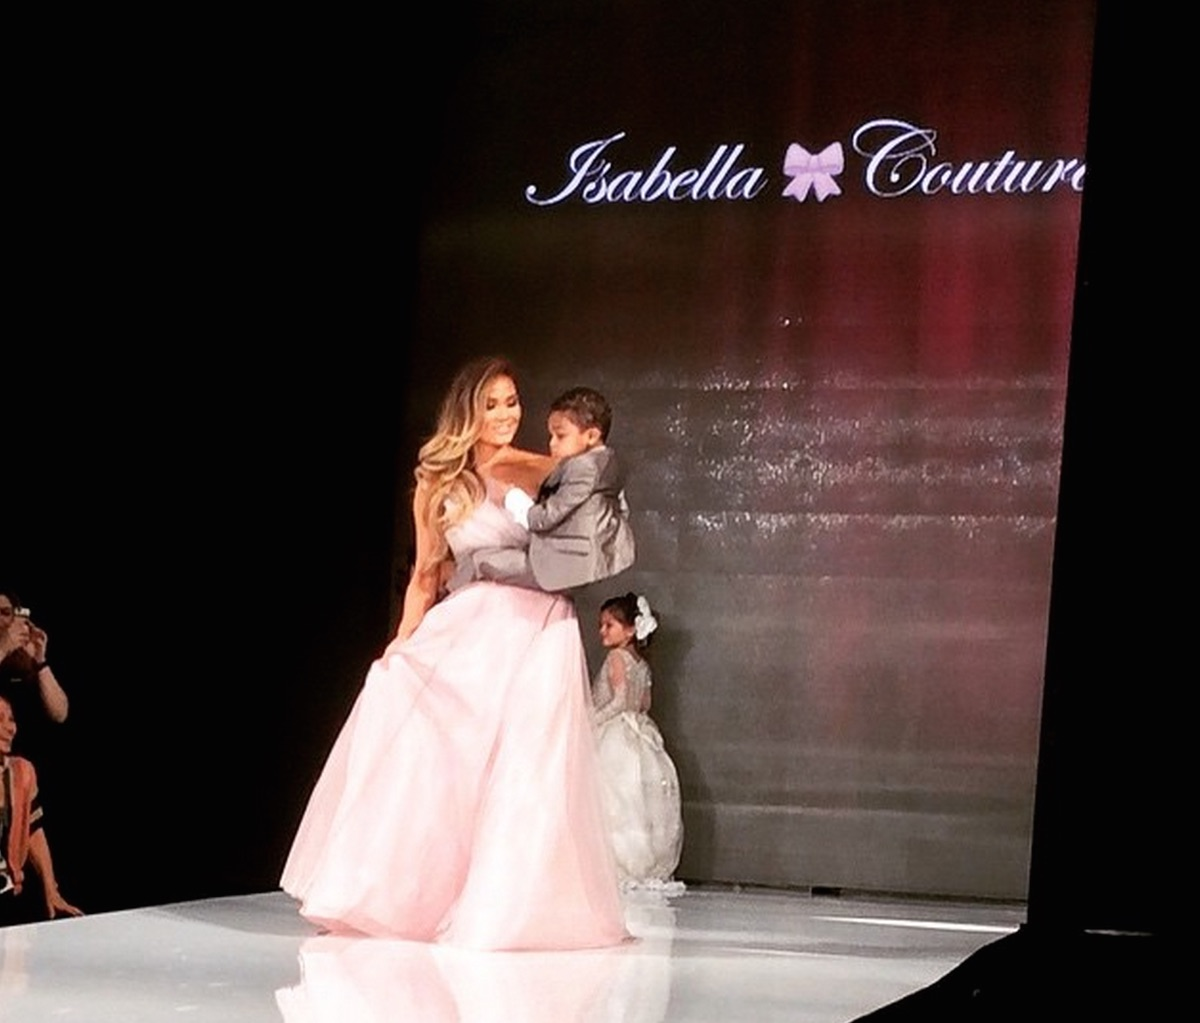 Isabella Couture Children's Designer Clothing Rocks L.A Fashion Week